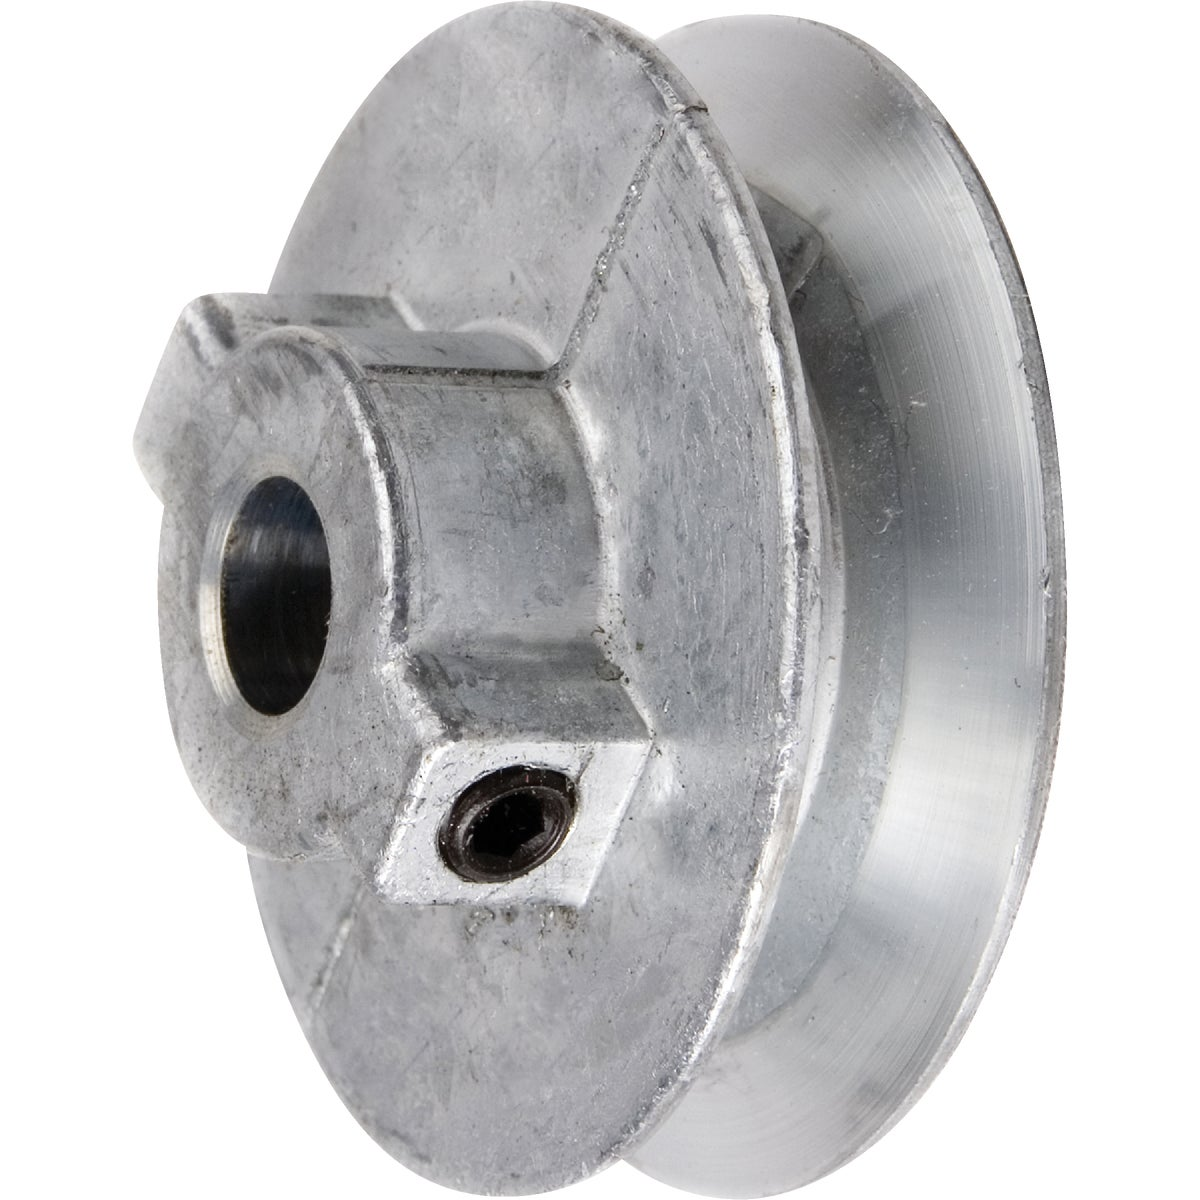 4-1/2X1/2 PULLEY - 450A5 by Chicago Die Casting